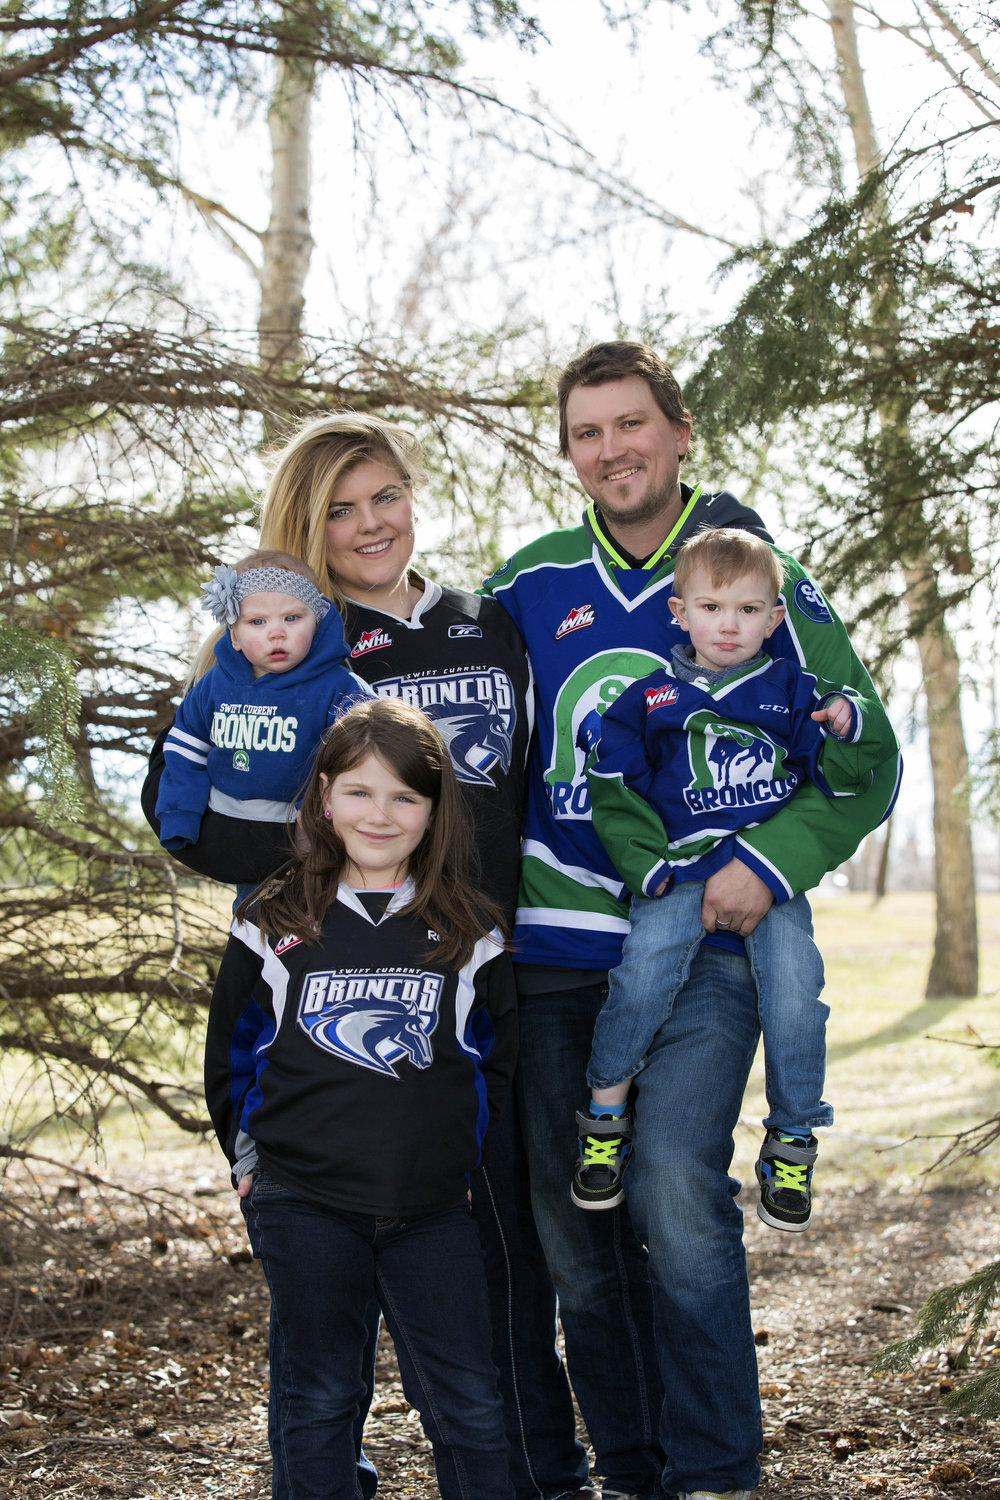 The Entire family are huge hockey fans.